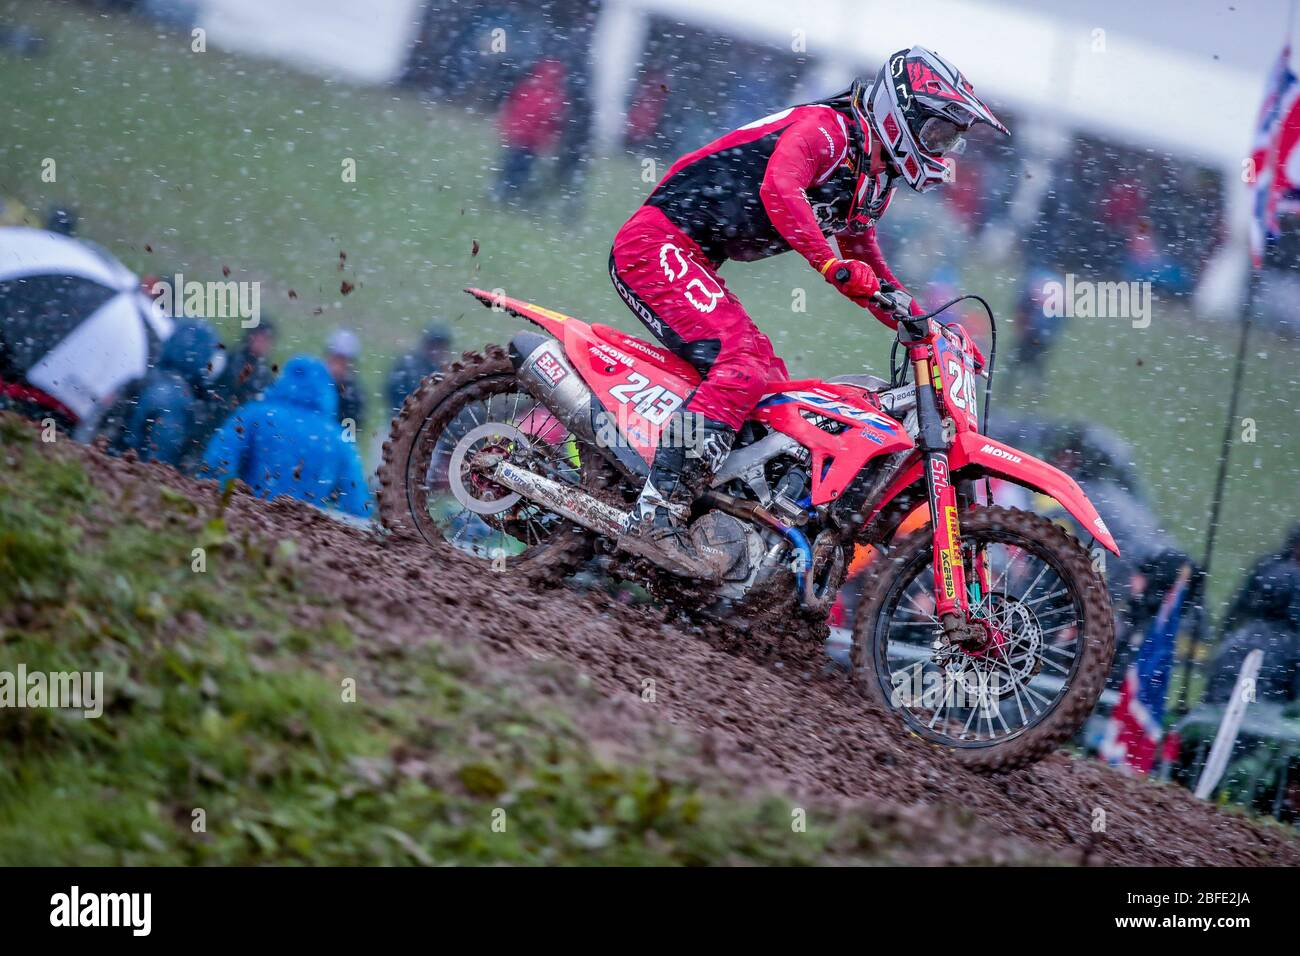 Winchester, Italy. 01st Mar, 2020. tim gajer (slo) team hrc during MXGP of Great Britain, Motocross in winchester, Italy, March 01 2020 Credit: Independent Photo Agency/Alamy Live News Stock Photo